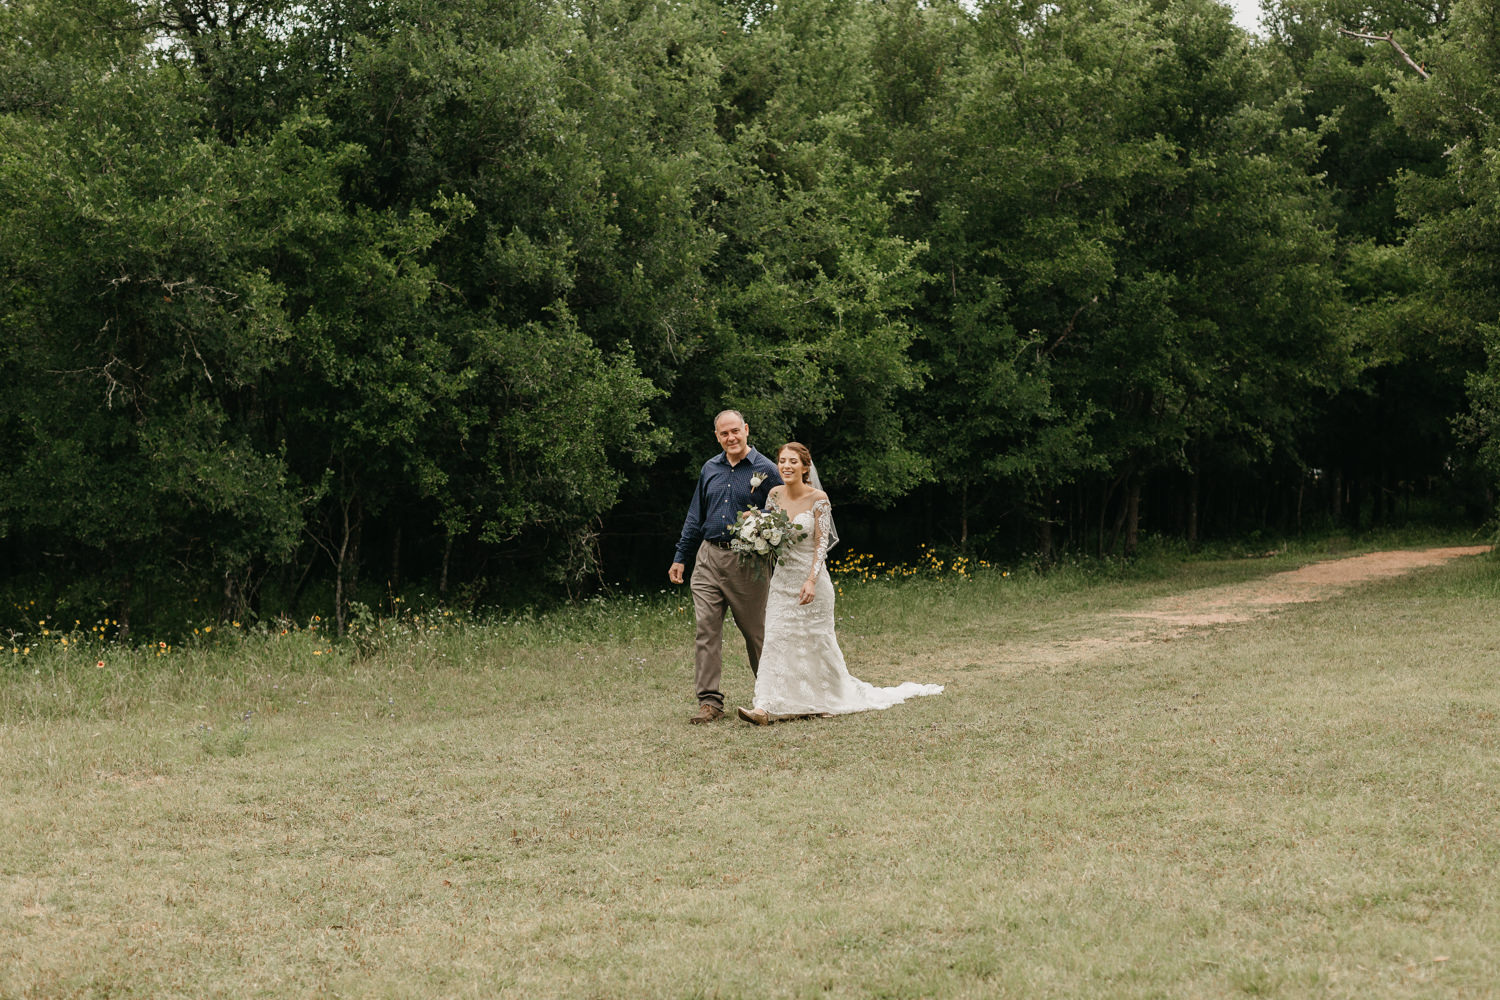 HaileyDylan_Austin Elopement Photographer Austin Wedding Photographer-58.jpg